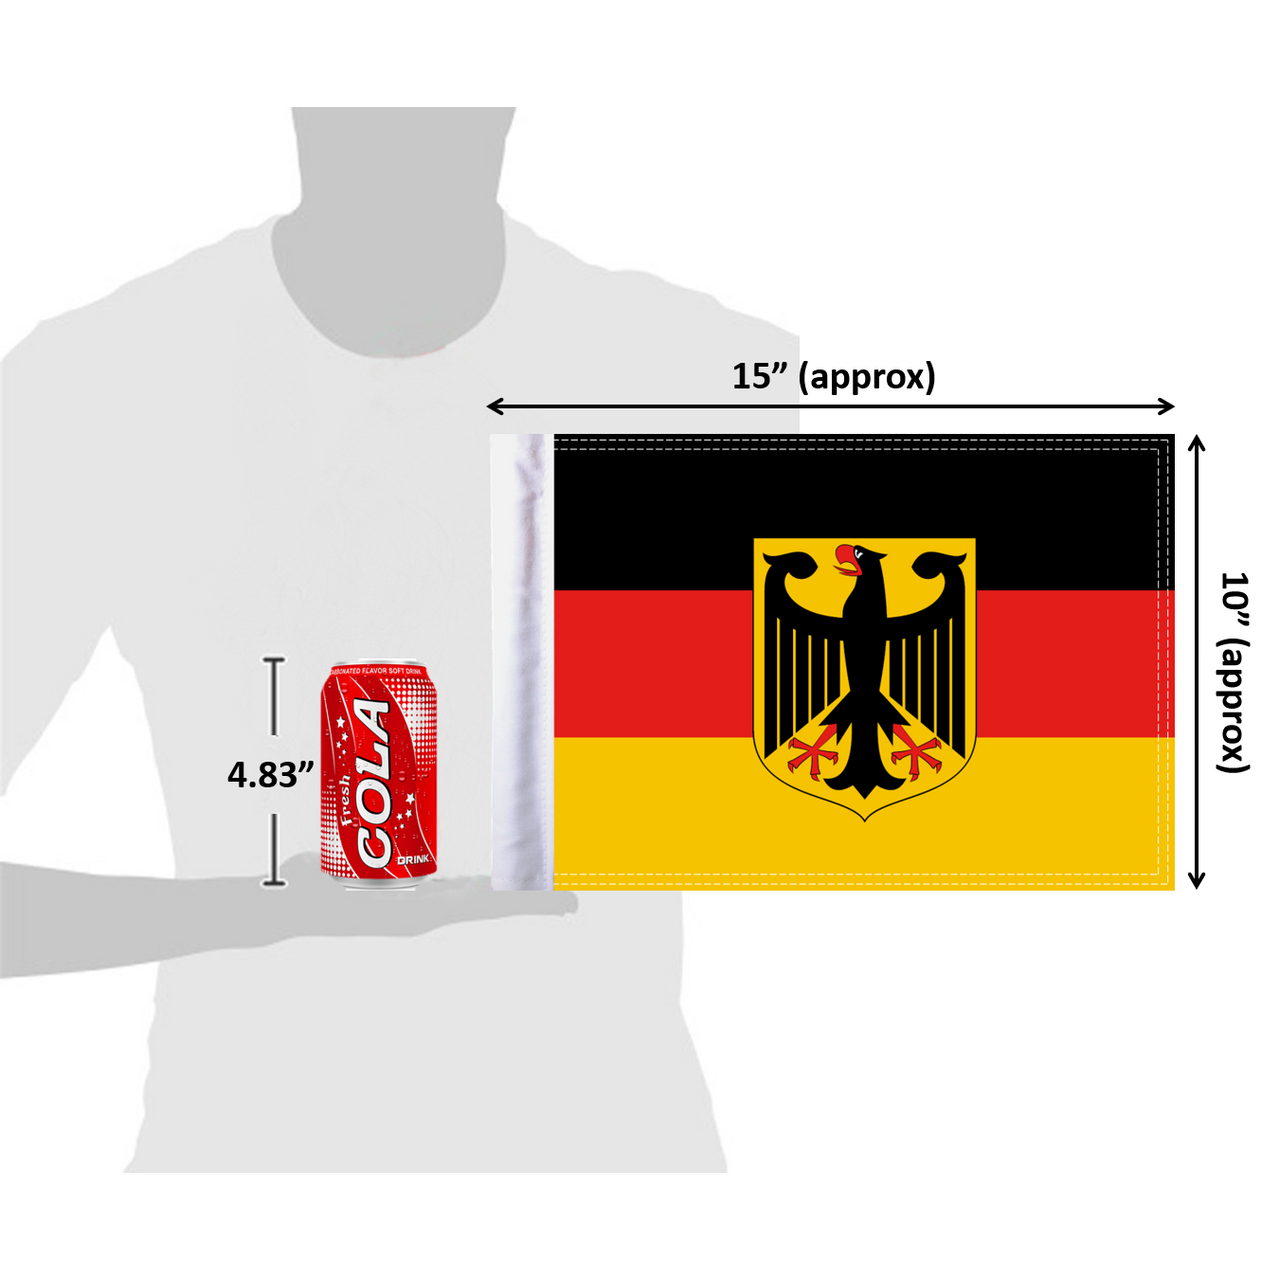 10x15 Germany with Coat of Arms flag (size comparison view)